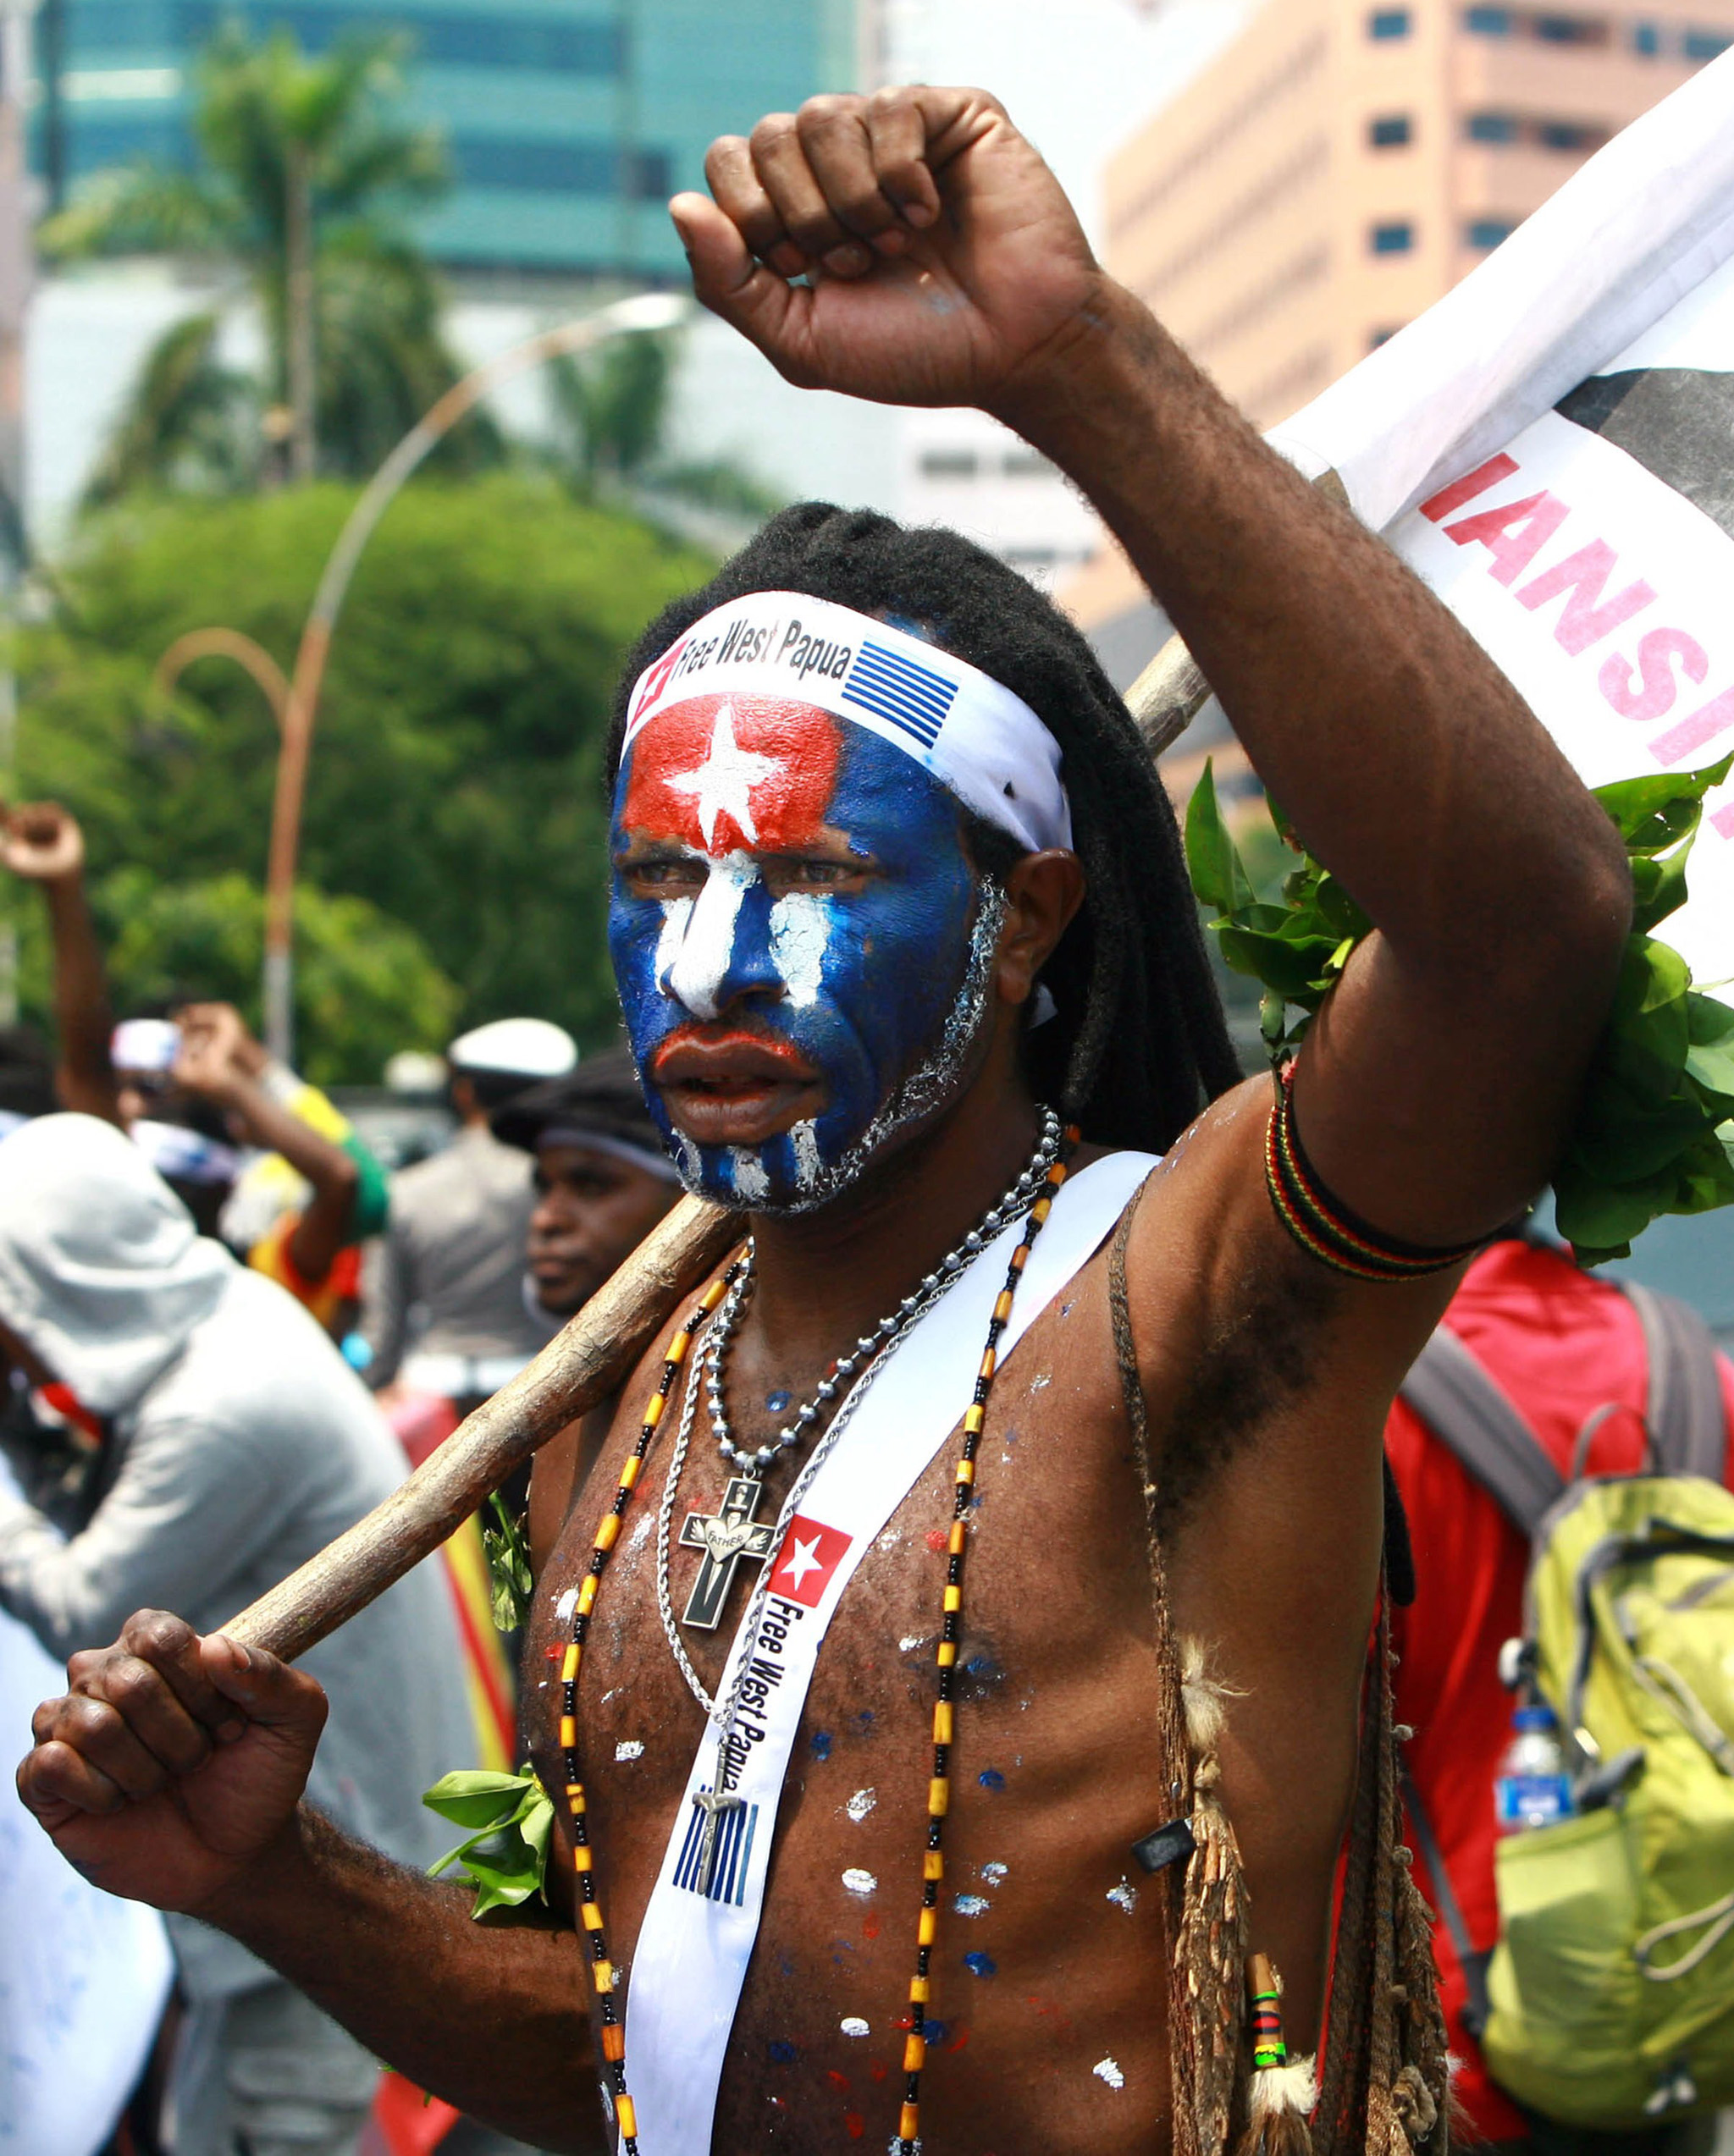 Papuan student takes part on a rally in Surabaya, East Java province, demanding the freedom of West Papua province. Papua declared independence from the Dutch in 1961, but neighbouring Indonesia took control of the region with force in 1963.